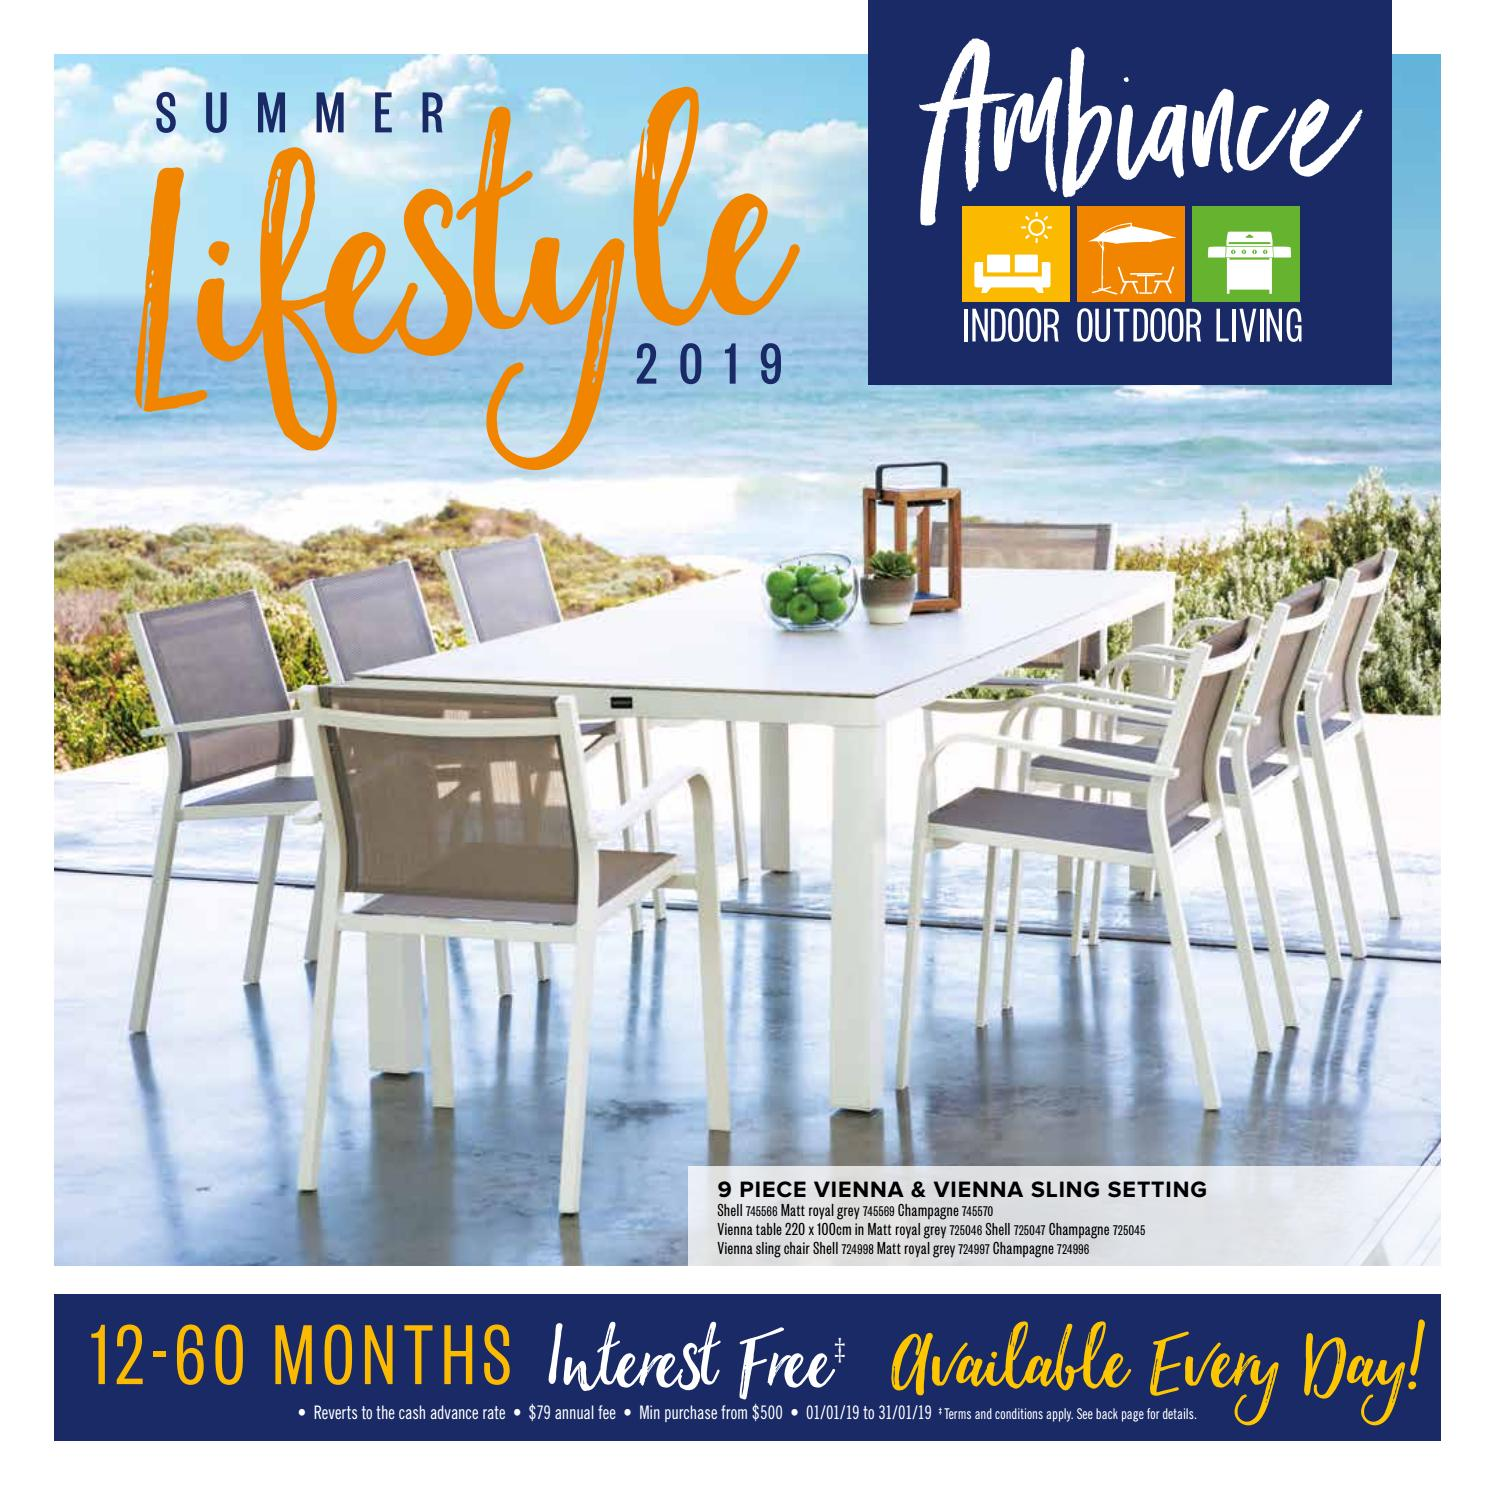 Ambiance Indoor Outdoor Living January 2019 Catalogue By